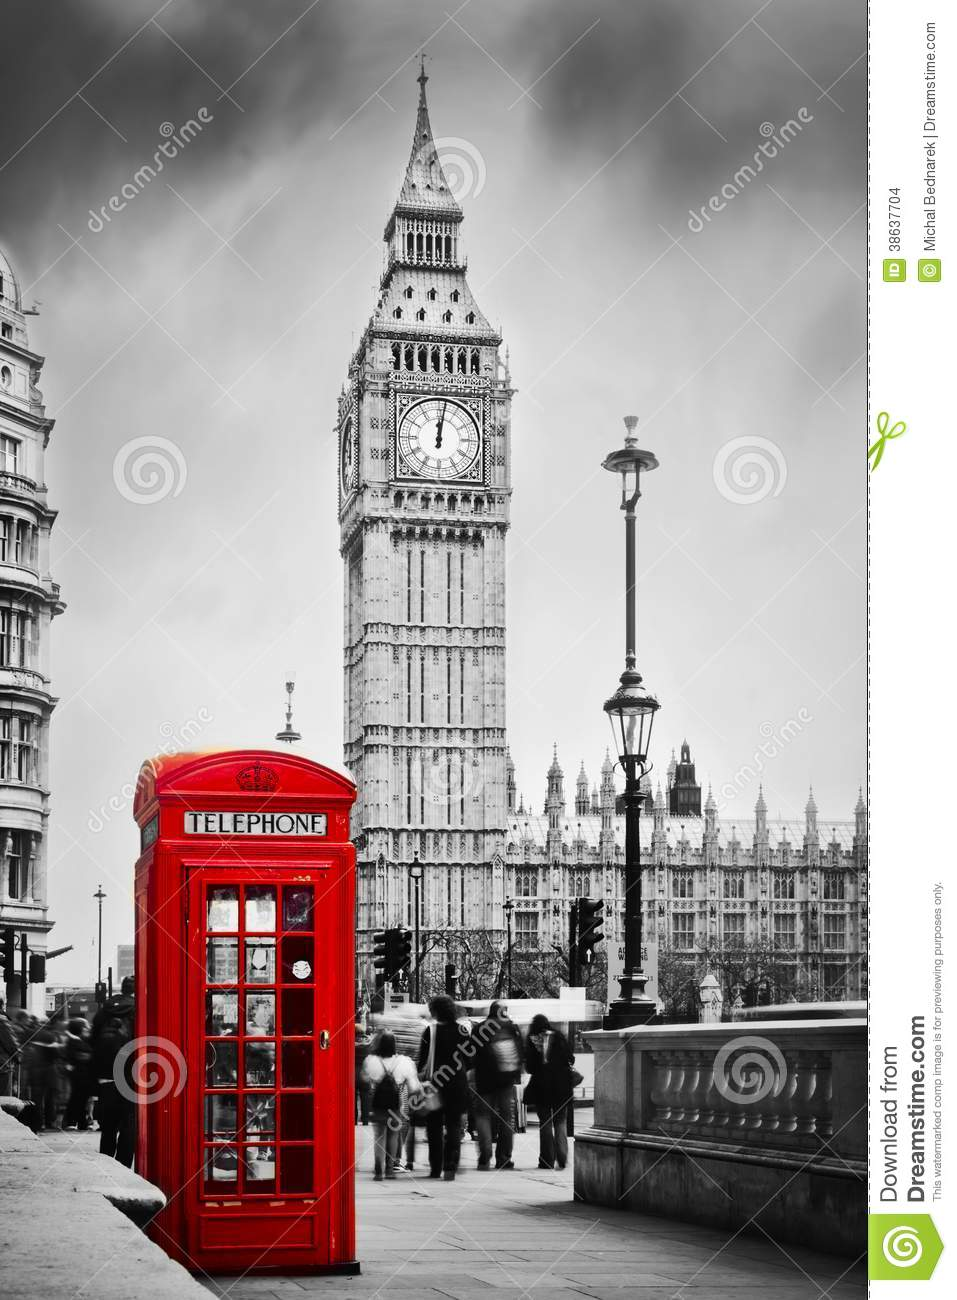 Download Red Phone Booth And Big Ben In London, England UK. Stock Photo - Image of rush, black: 38637704